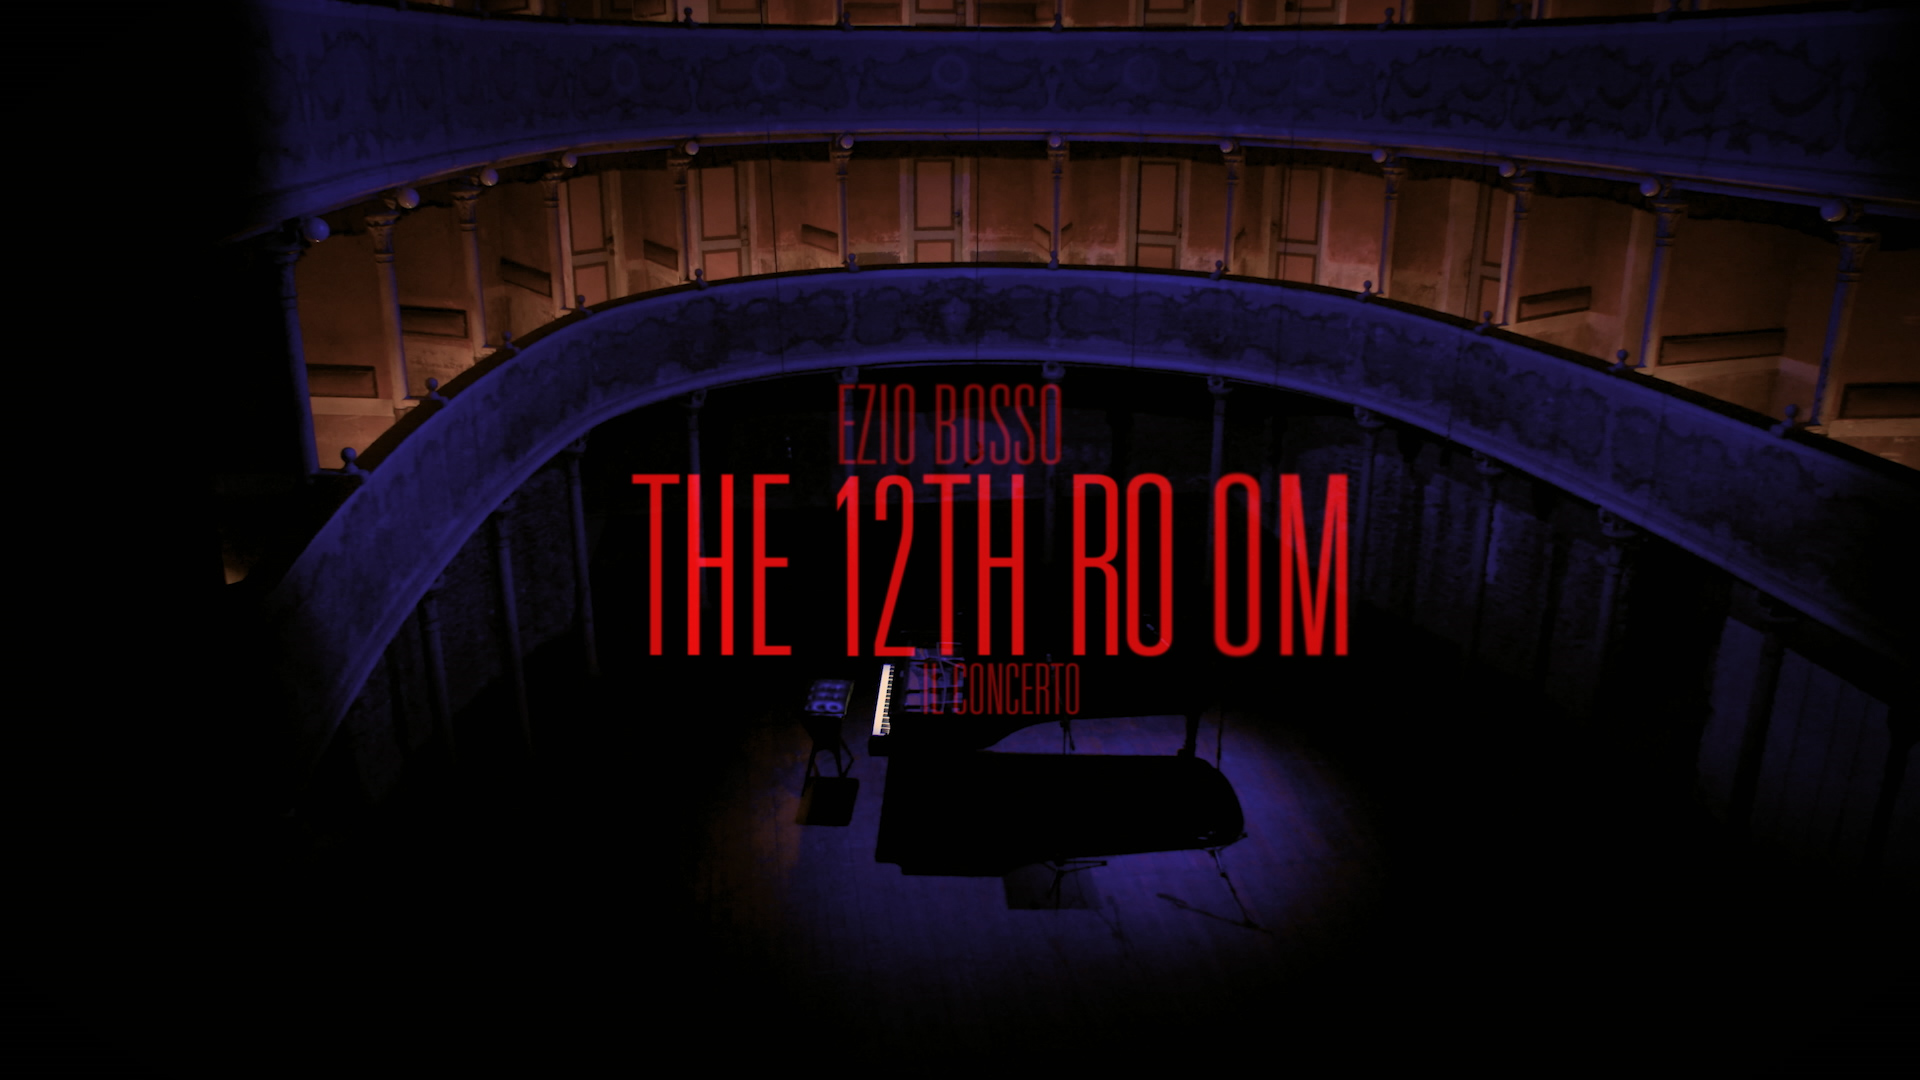 EZIO BOSSO  ・ The 12 room